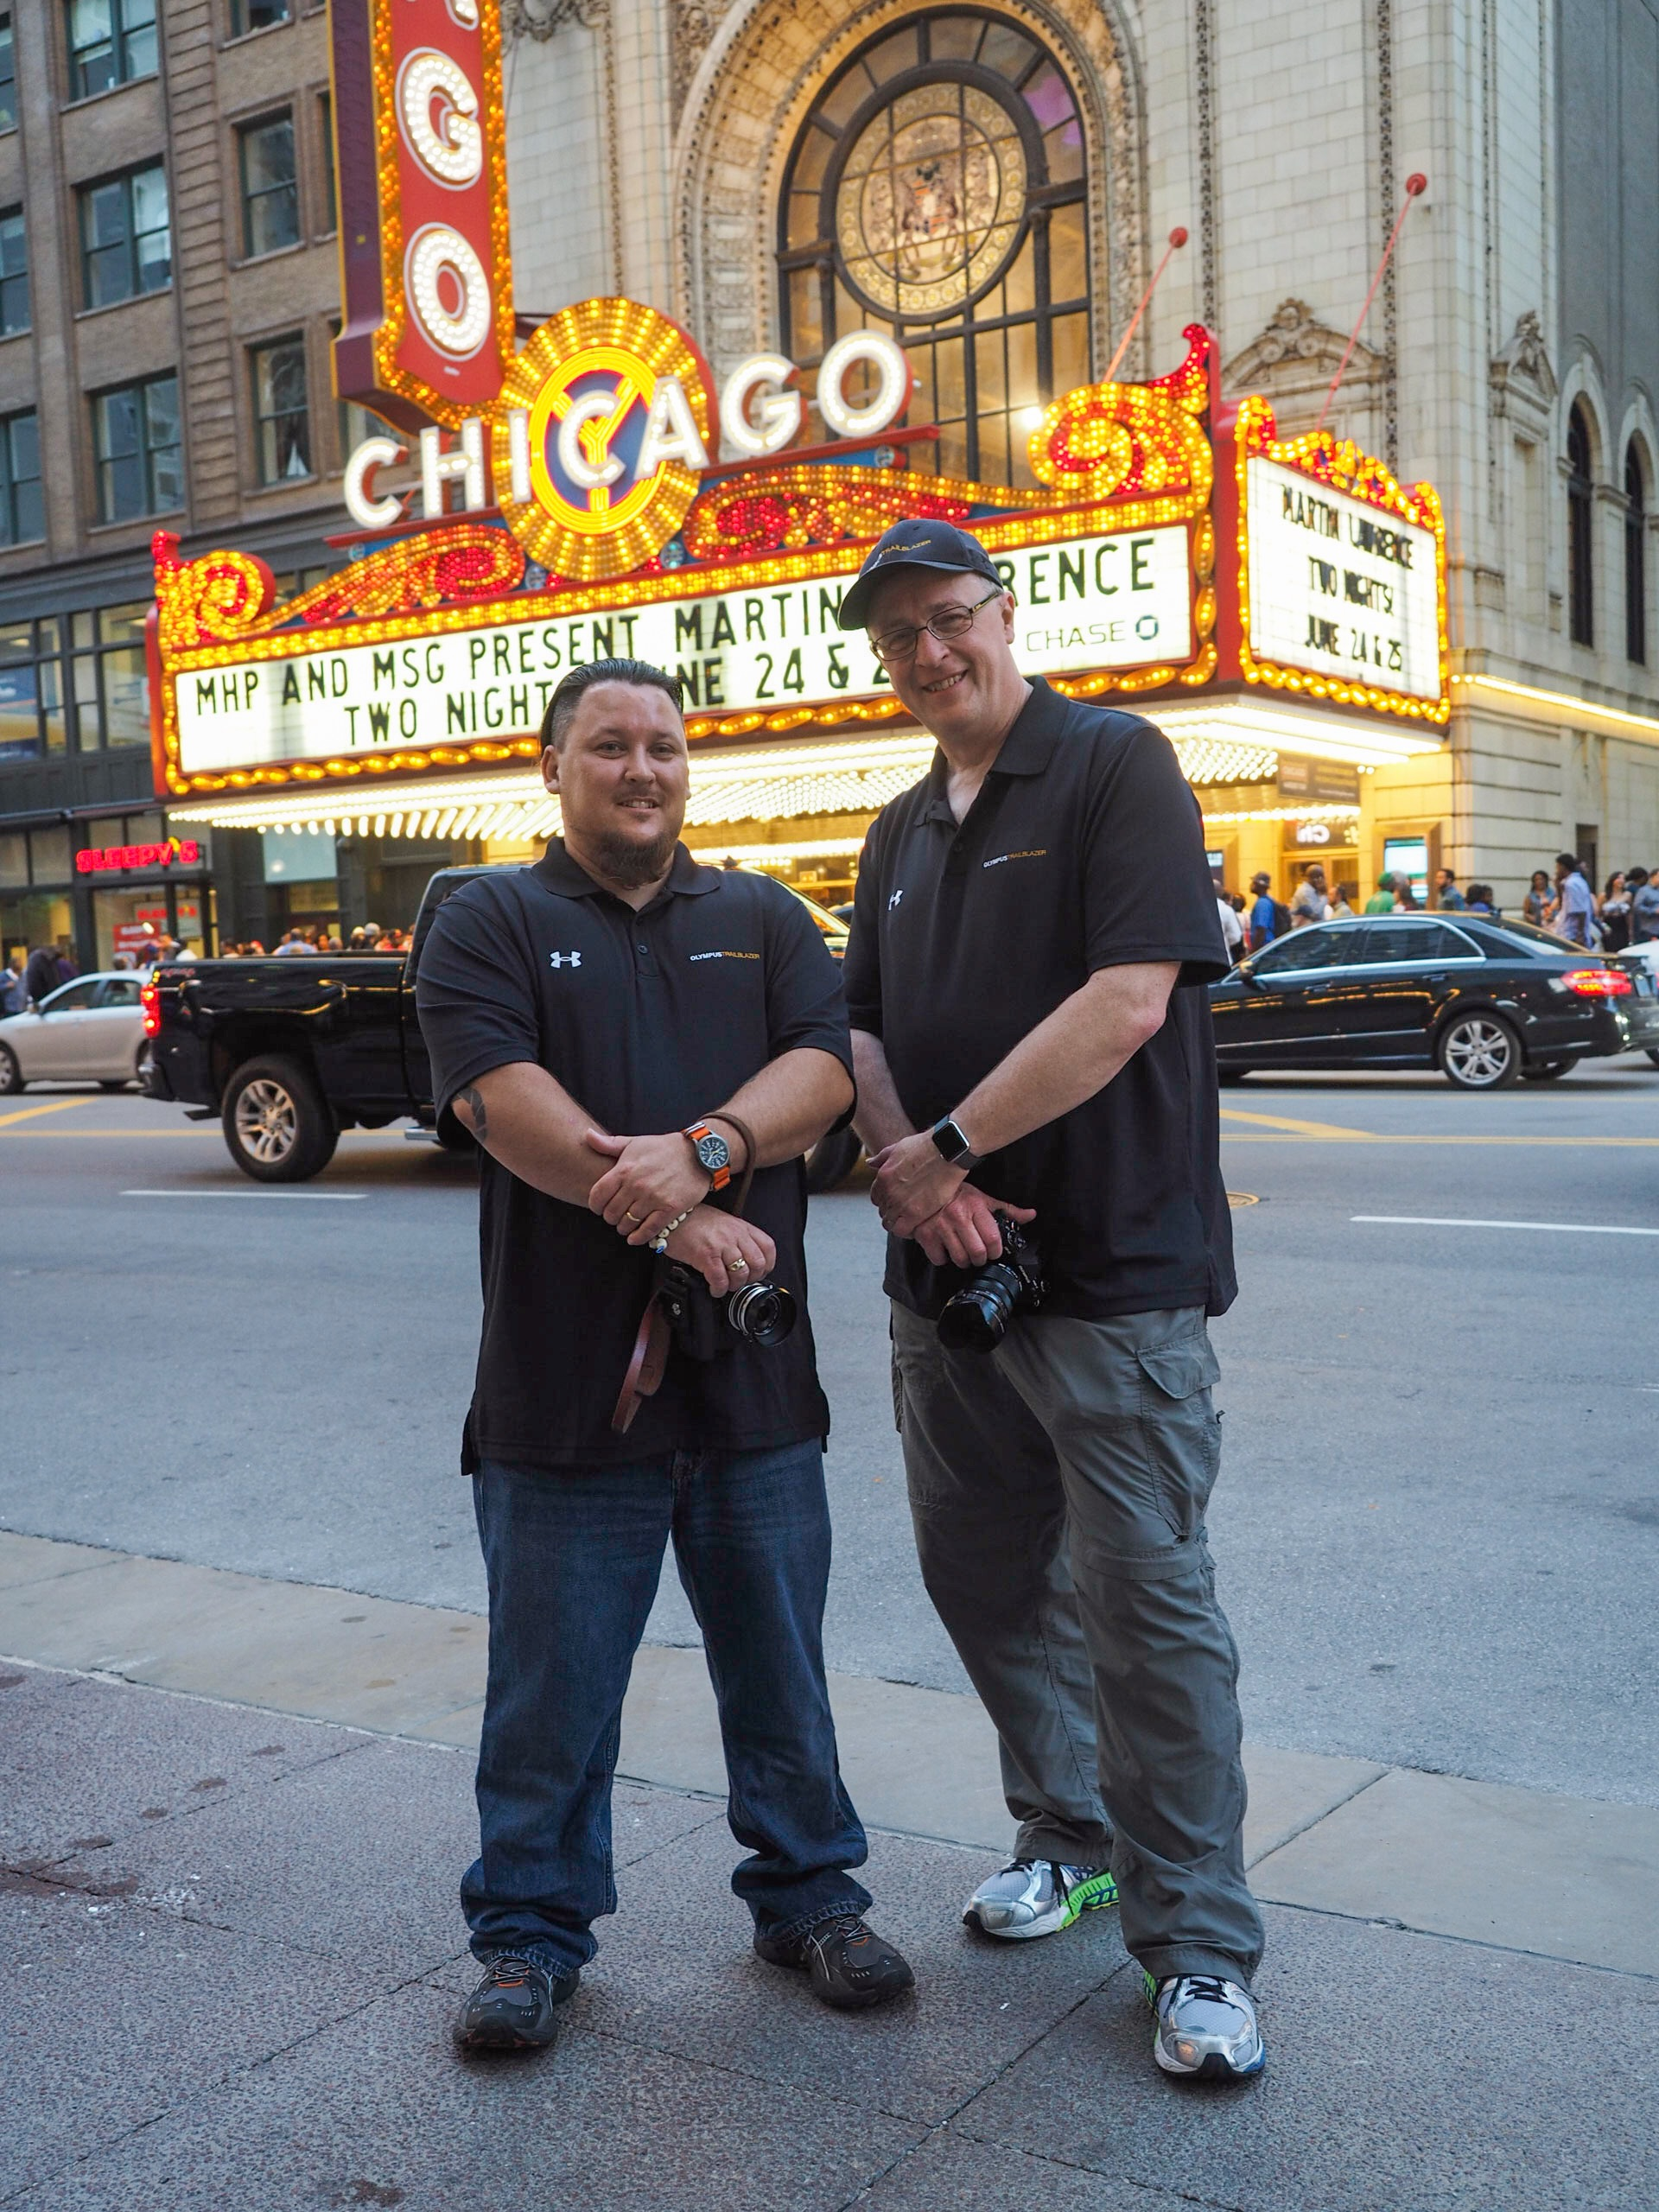 Jamie MacDonald and Mike Boening, Olympus Trailblazers, posing before the Chicago Theater.